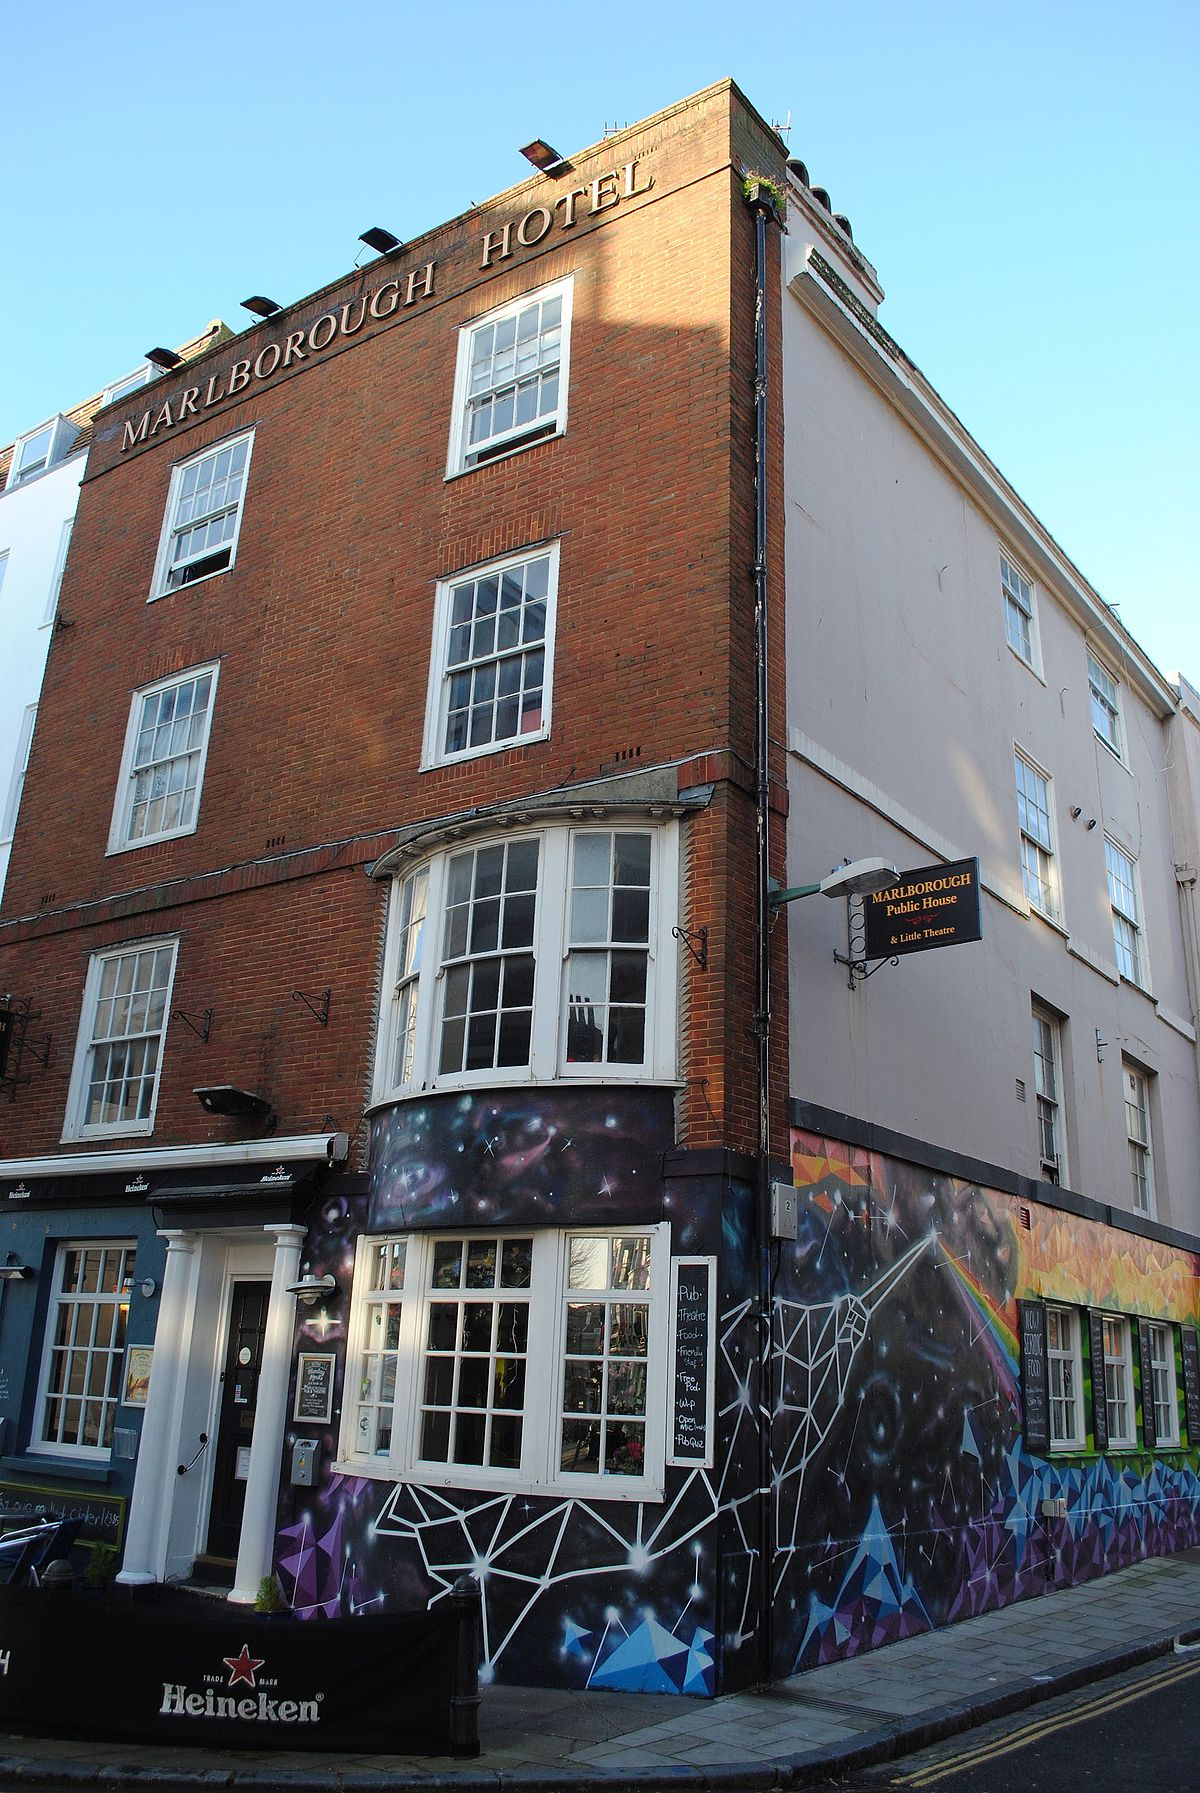 Marlborough Pub and Theatre - Wikipedia